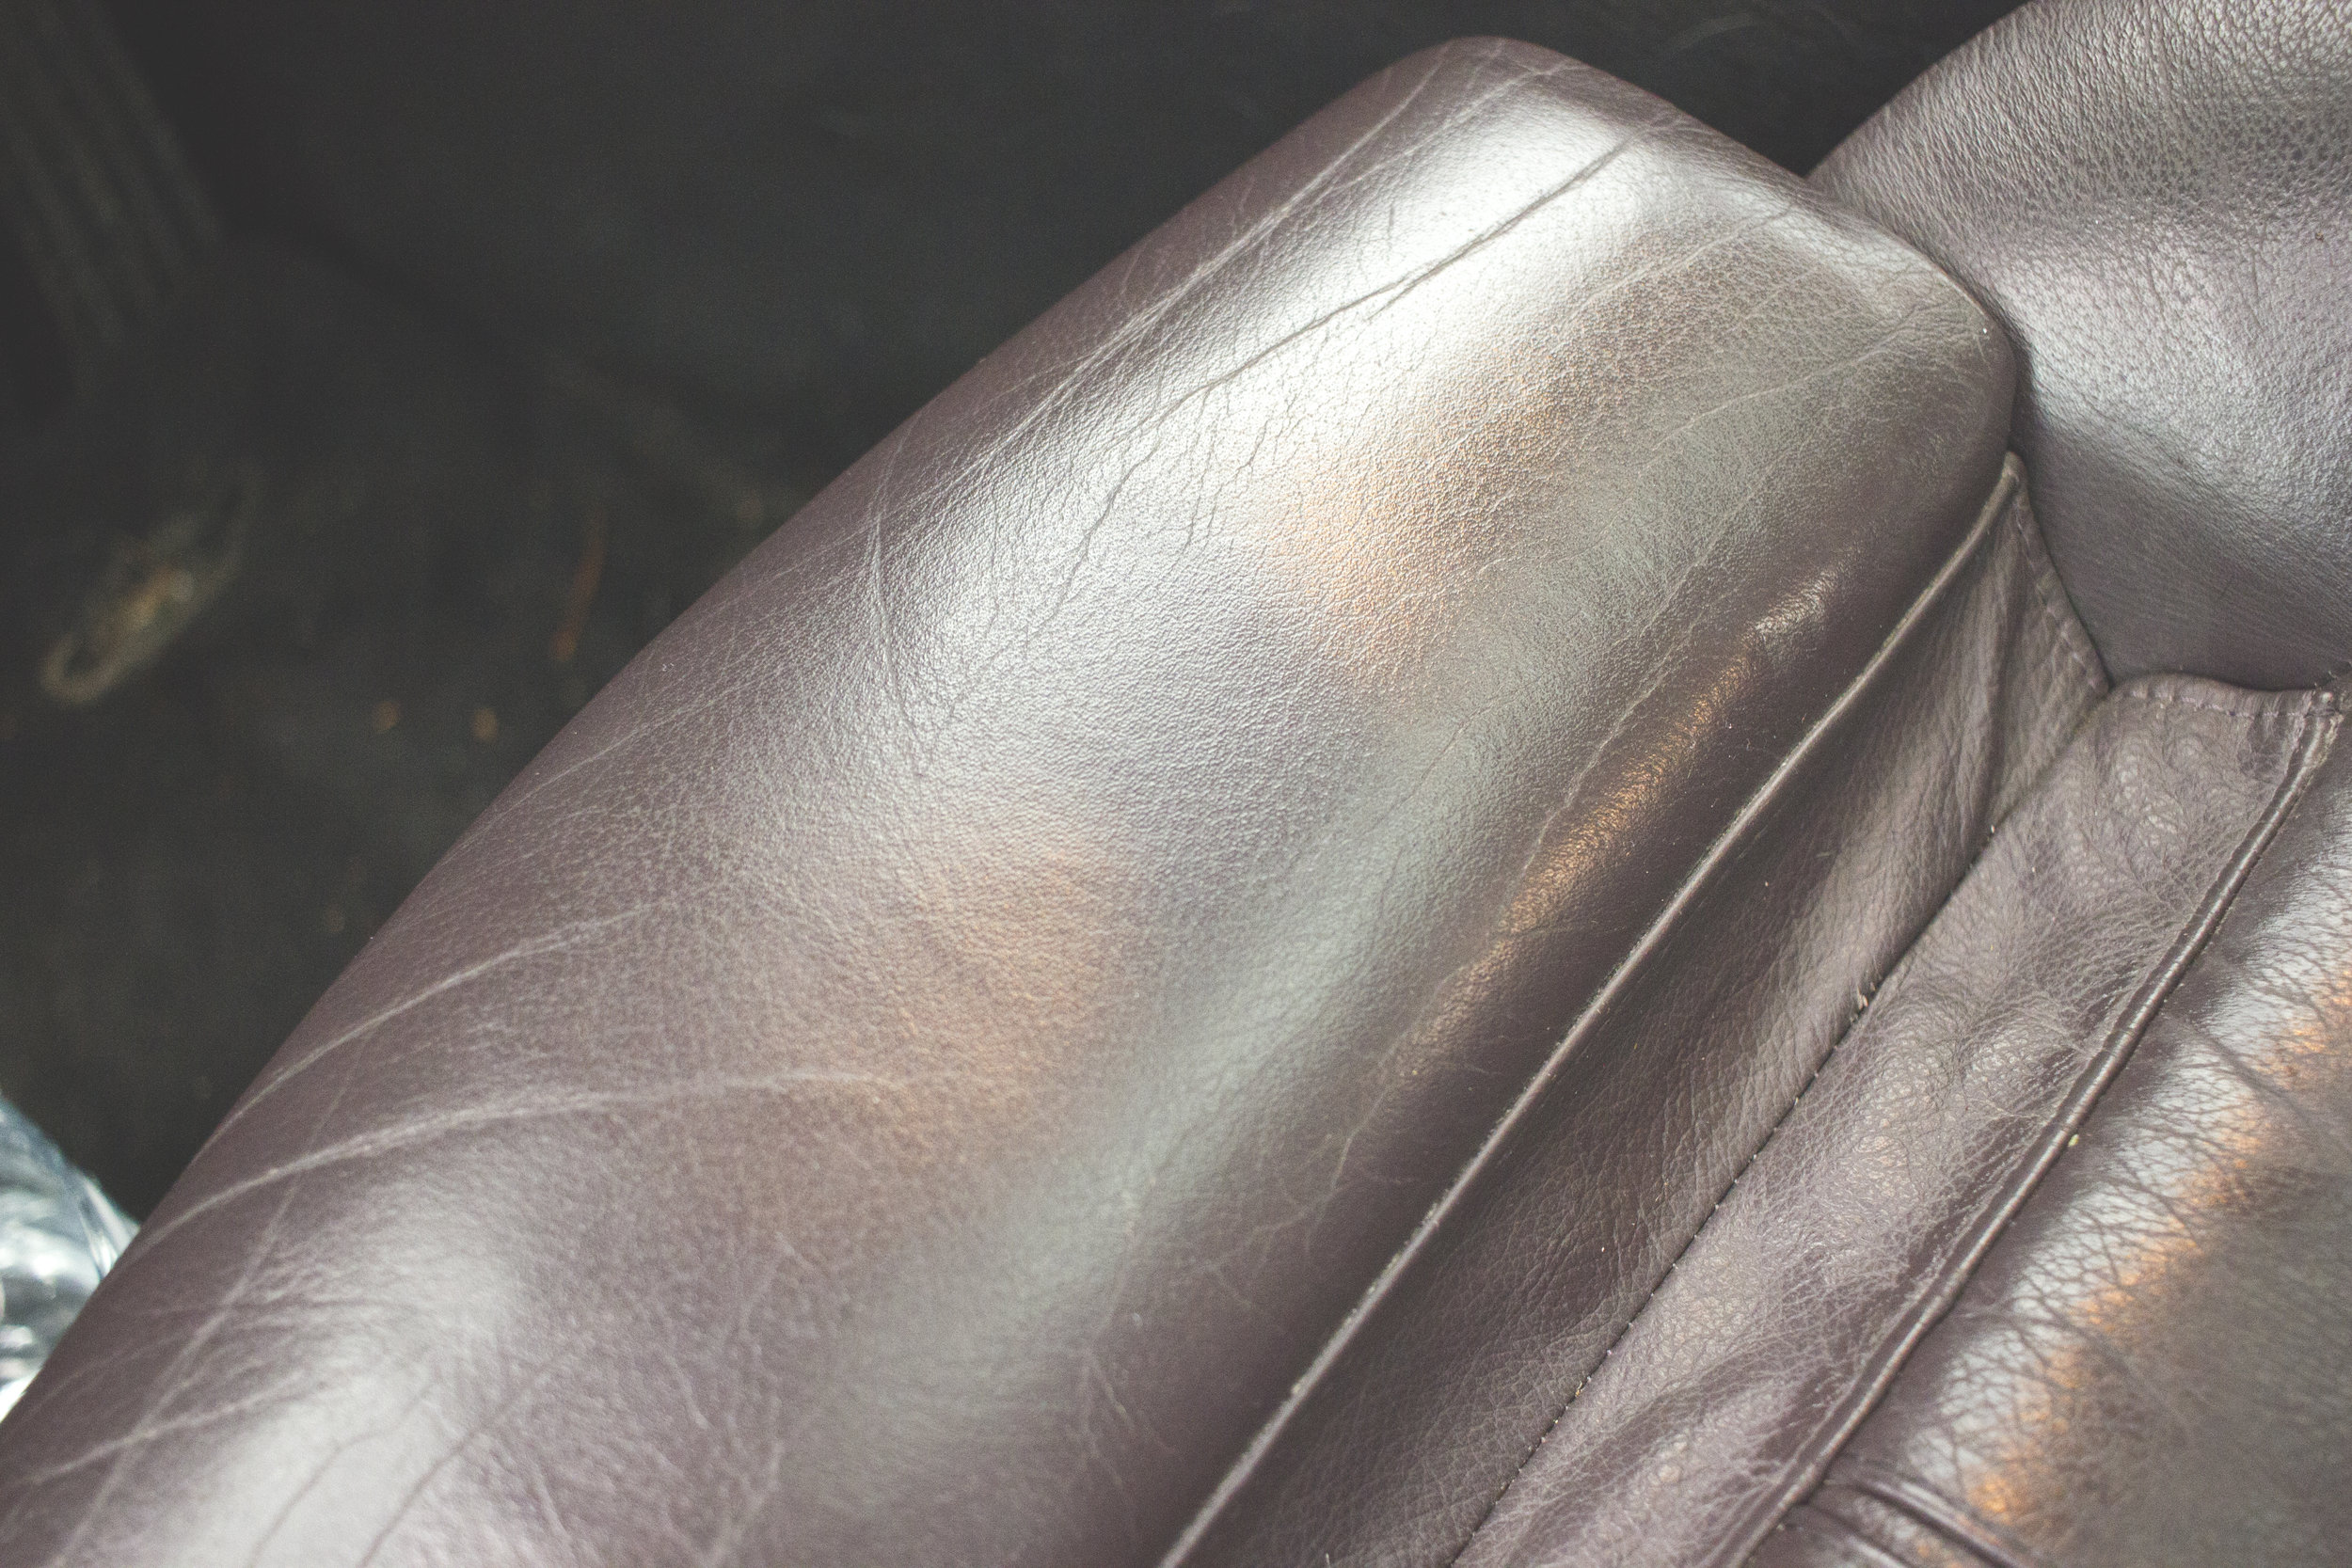 Mömus bmw e39 aubergine leather interior sport seats Before